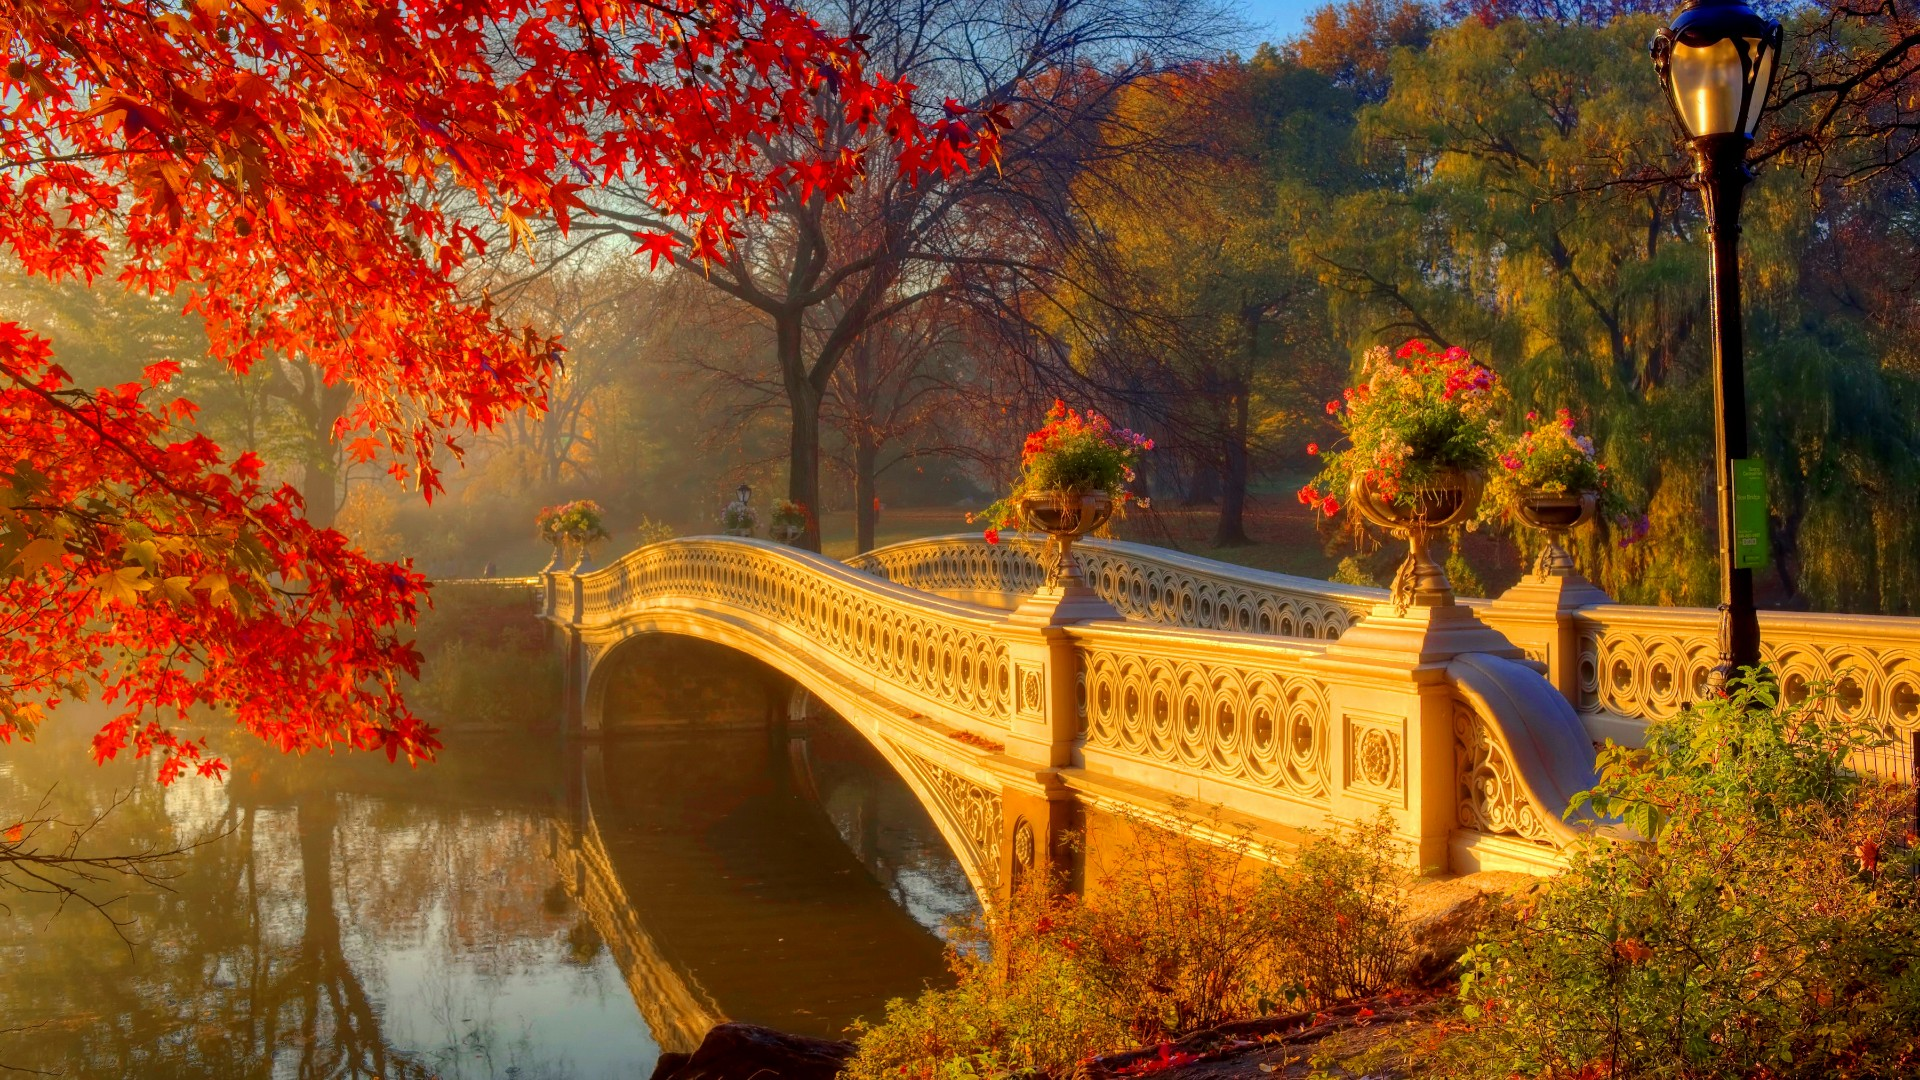 Central Park Wallpapers and Background Images - stmed.net  |Autumn Central Park Screensavers